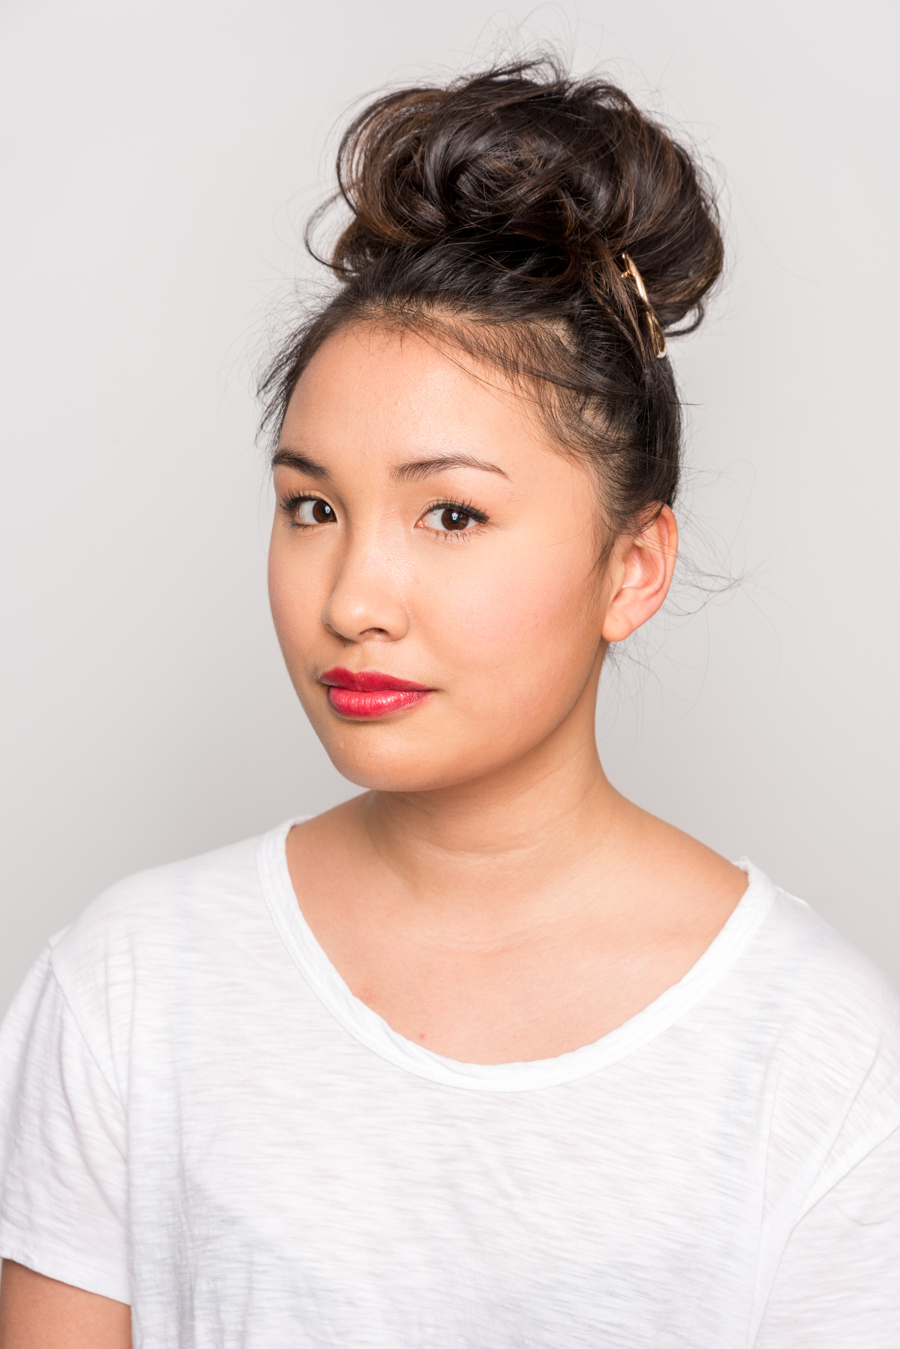 ROCK MAMA NYC LIFESTYLE BLOG-HOW TO USE A DONUT BUN